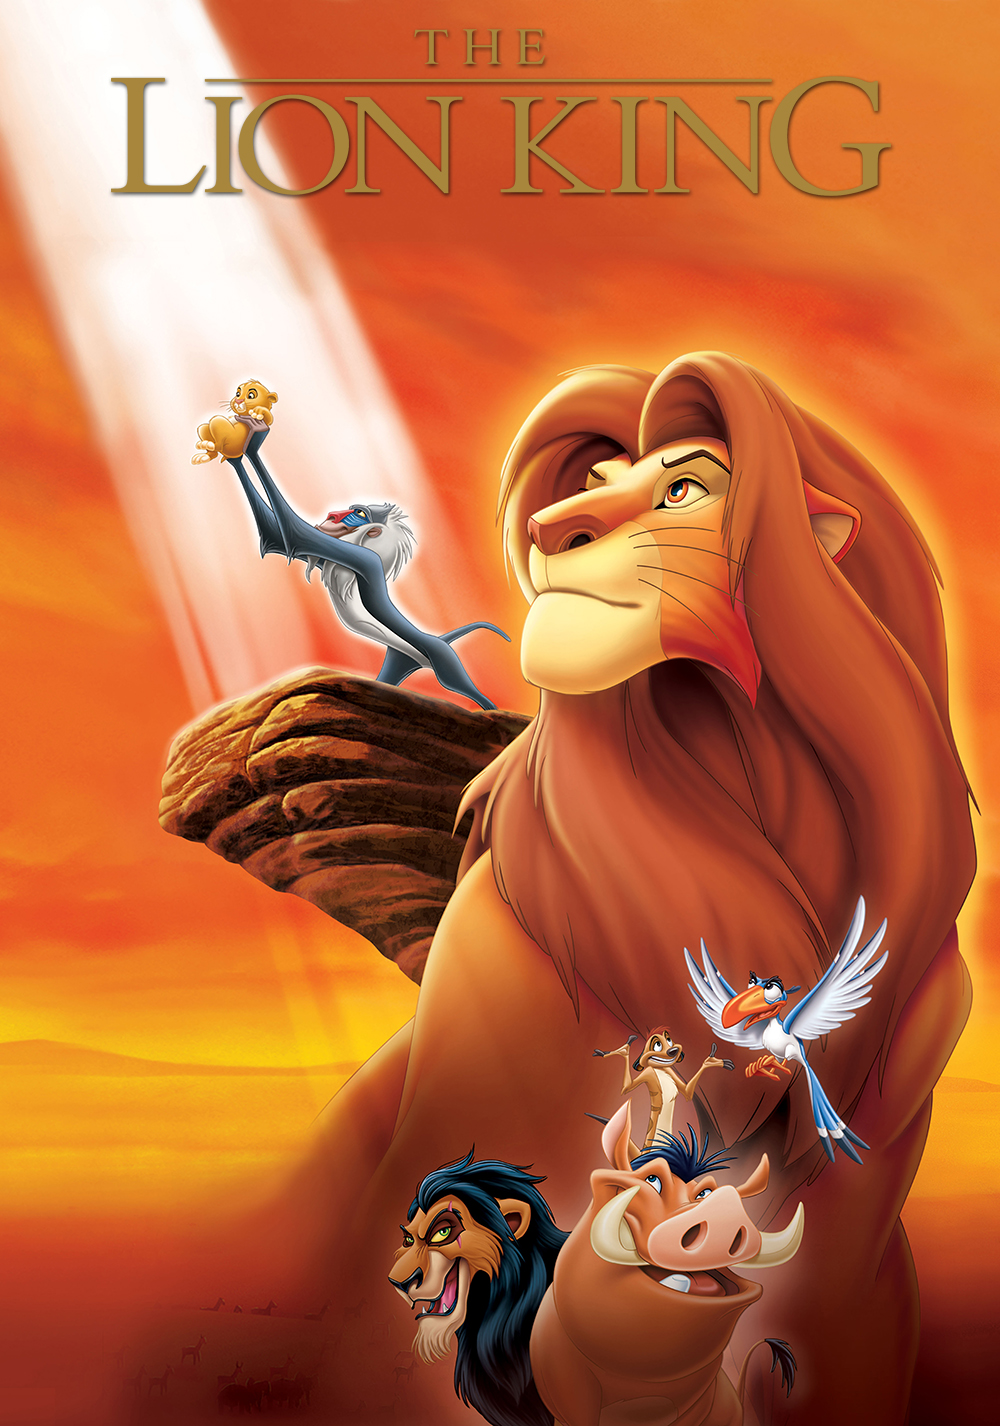 Image The Lion King Textless Poster 1 Jpg Disney Wiki Fandom Powered By Wikia